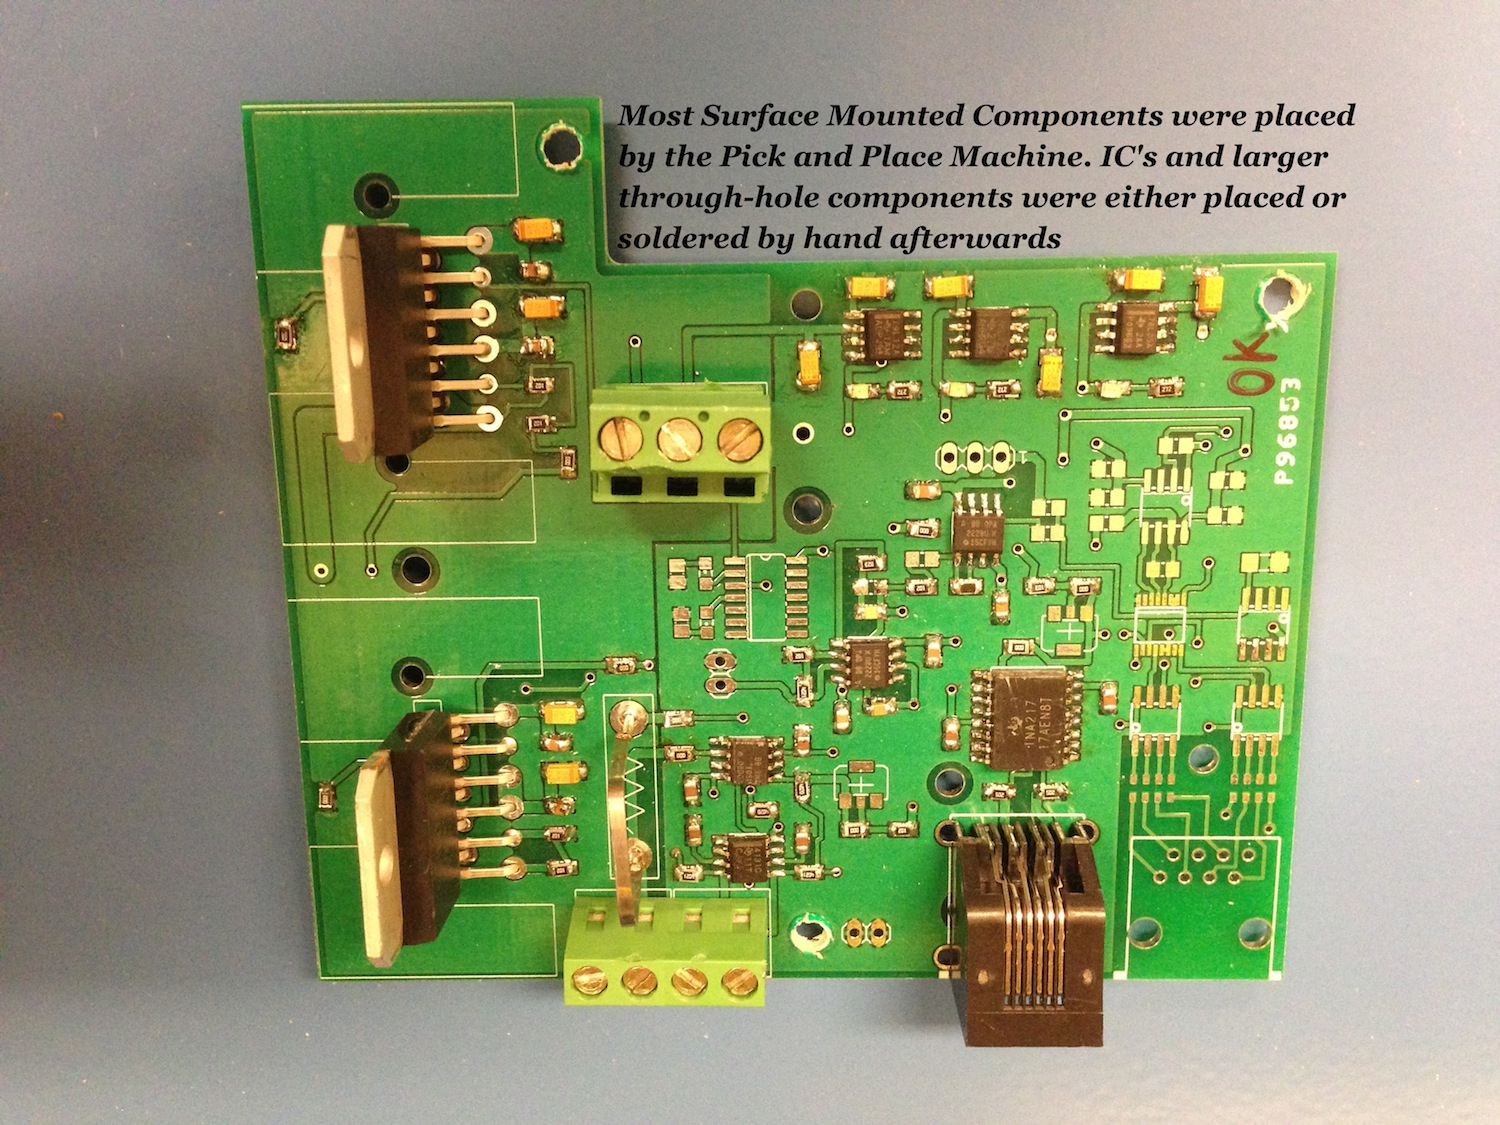 Pick And Place Documentation By Recycling Circuit Board Just You Need To The With Short Circuits Occurring Very Infrequently Safety Because Most Solder Paste Contains Lead Its A Good Idea Wash Your Hands After Handling It